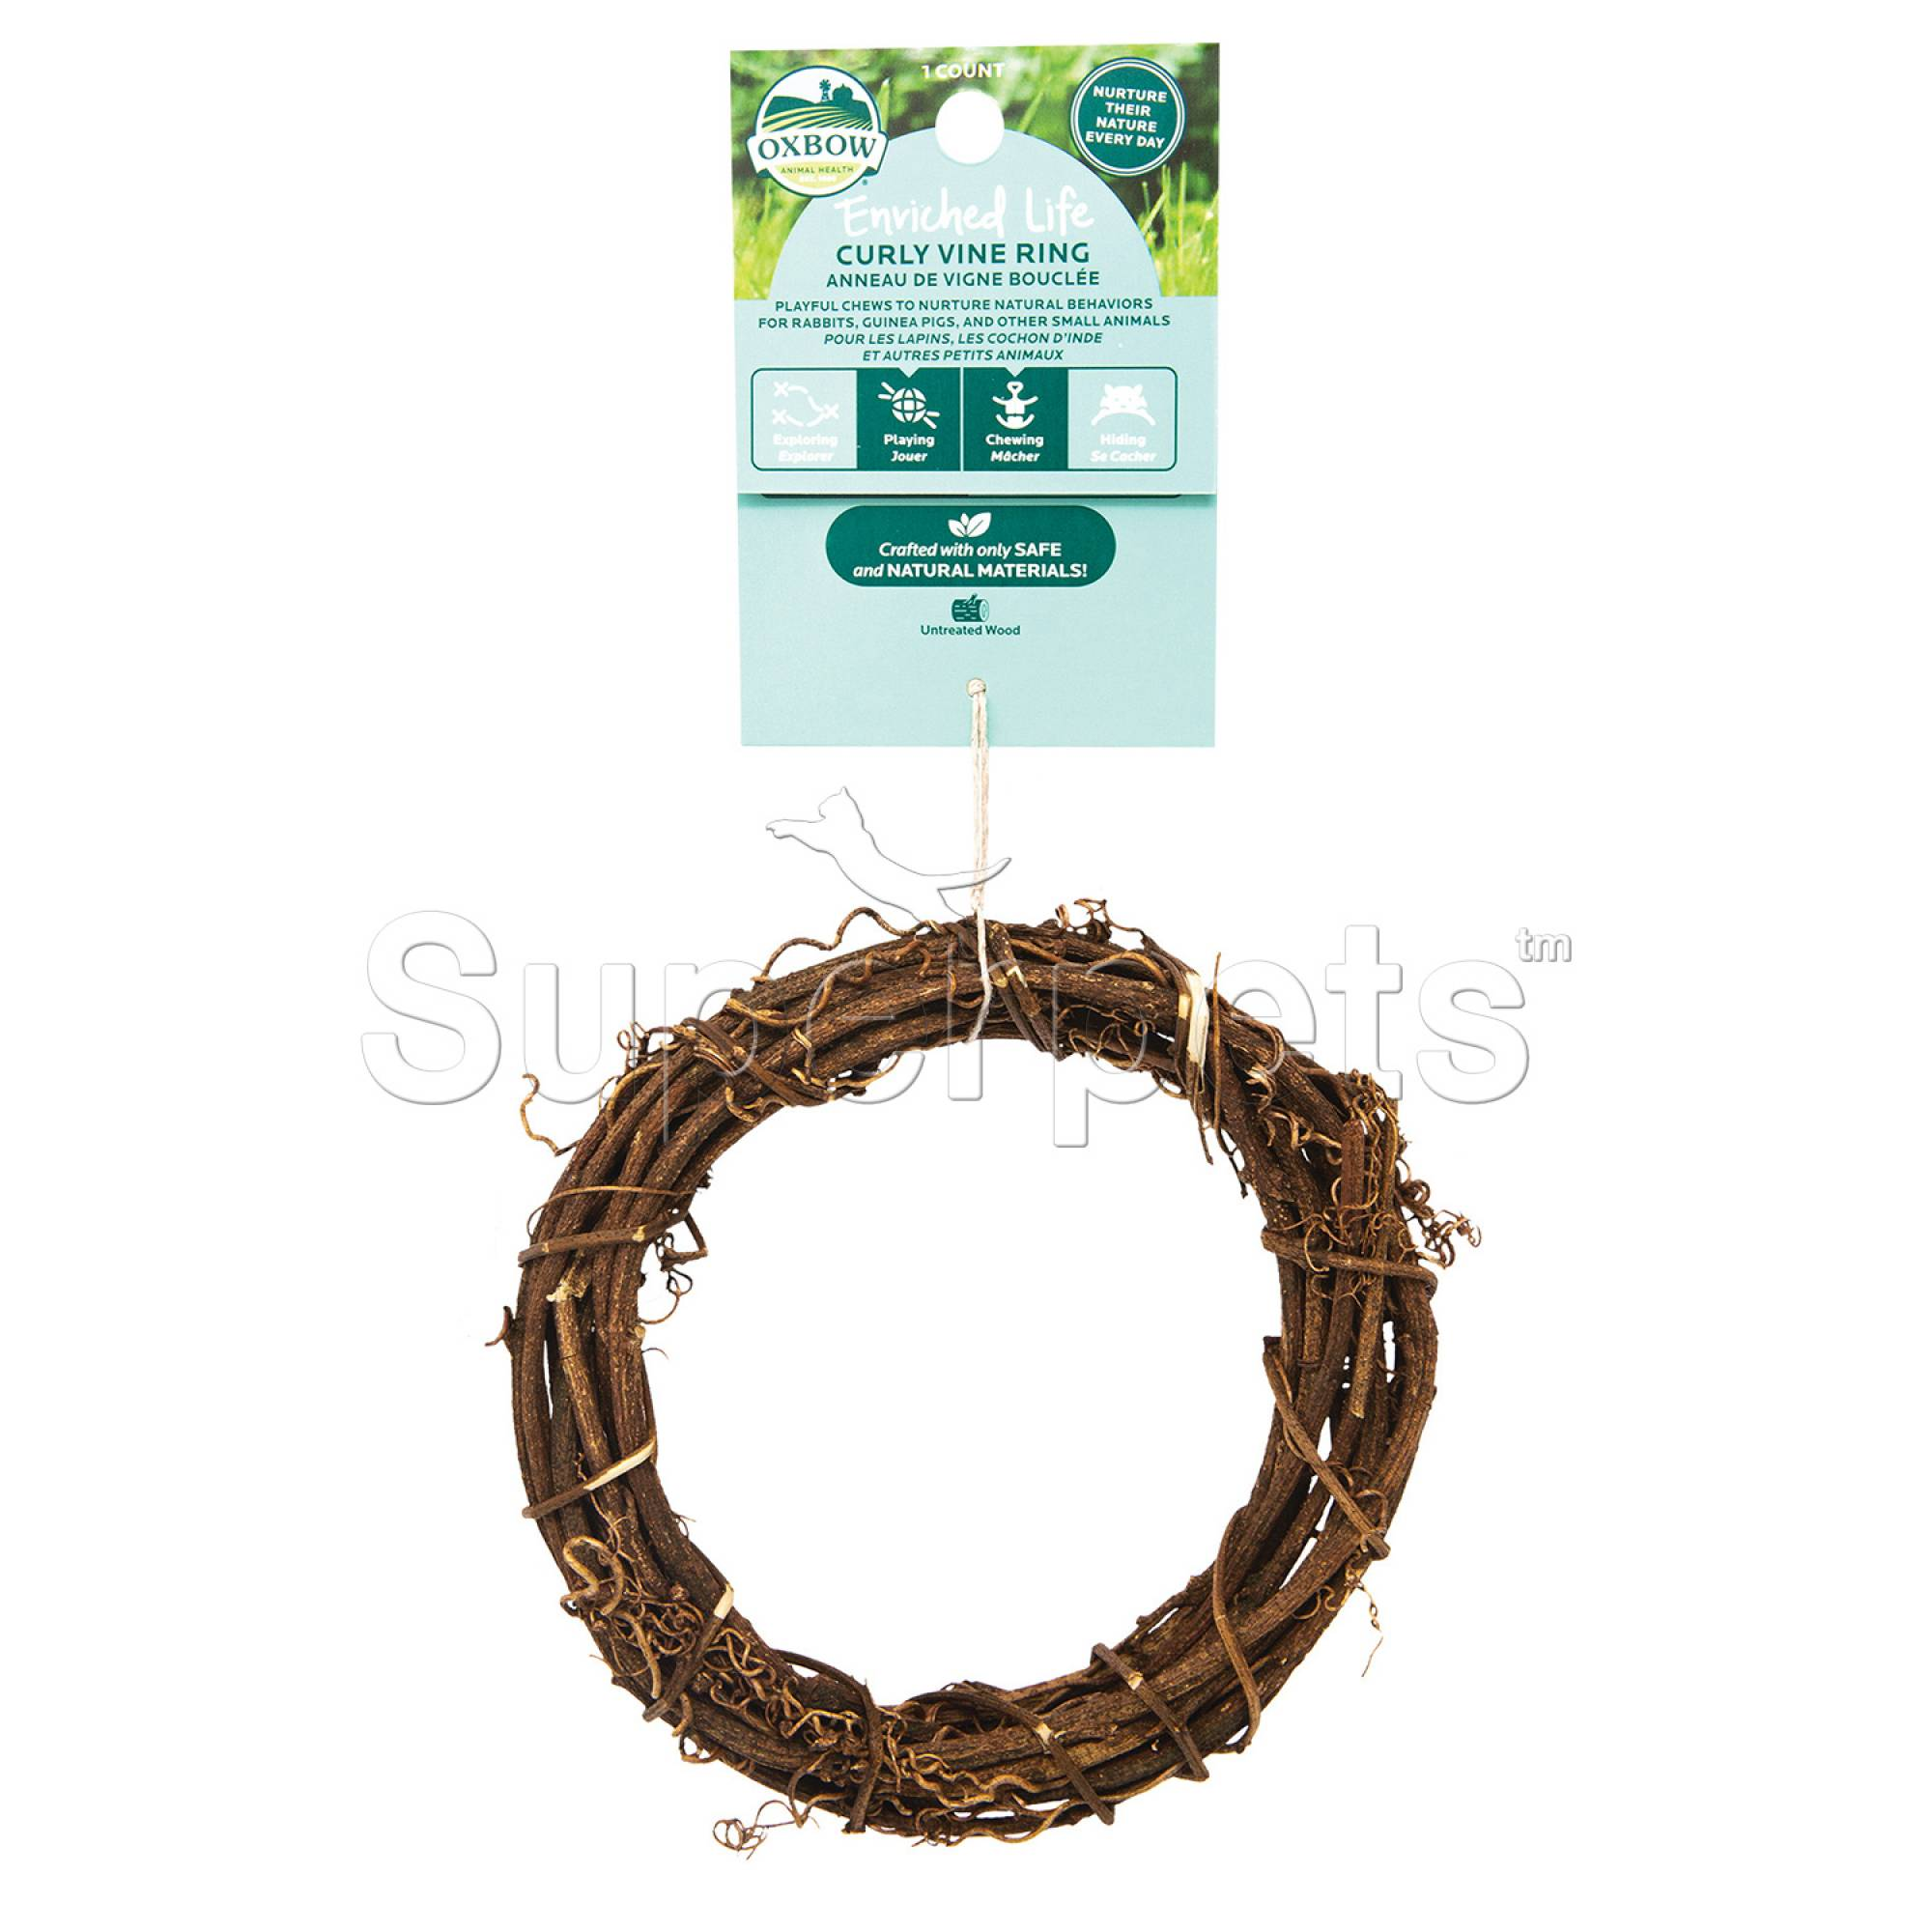 Oxbow Enriched Life Curly Vine Ring